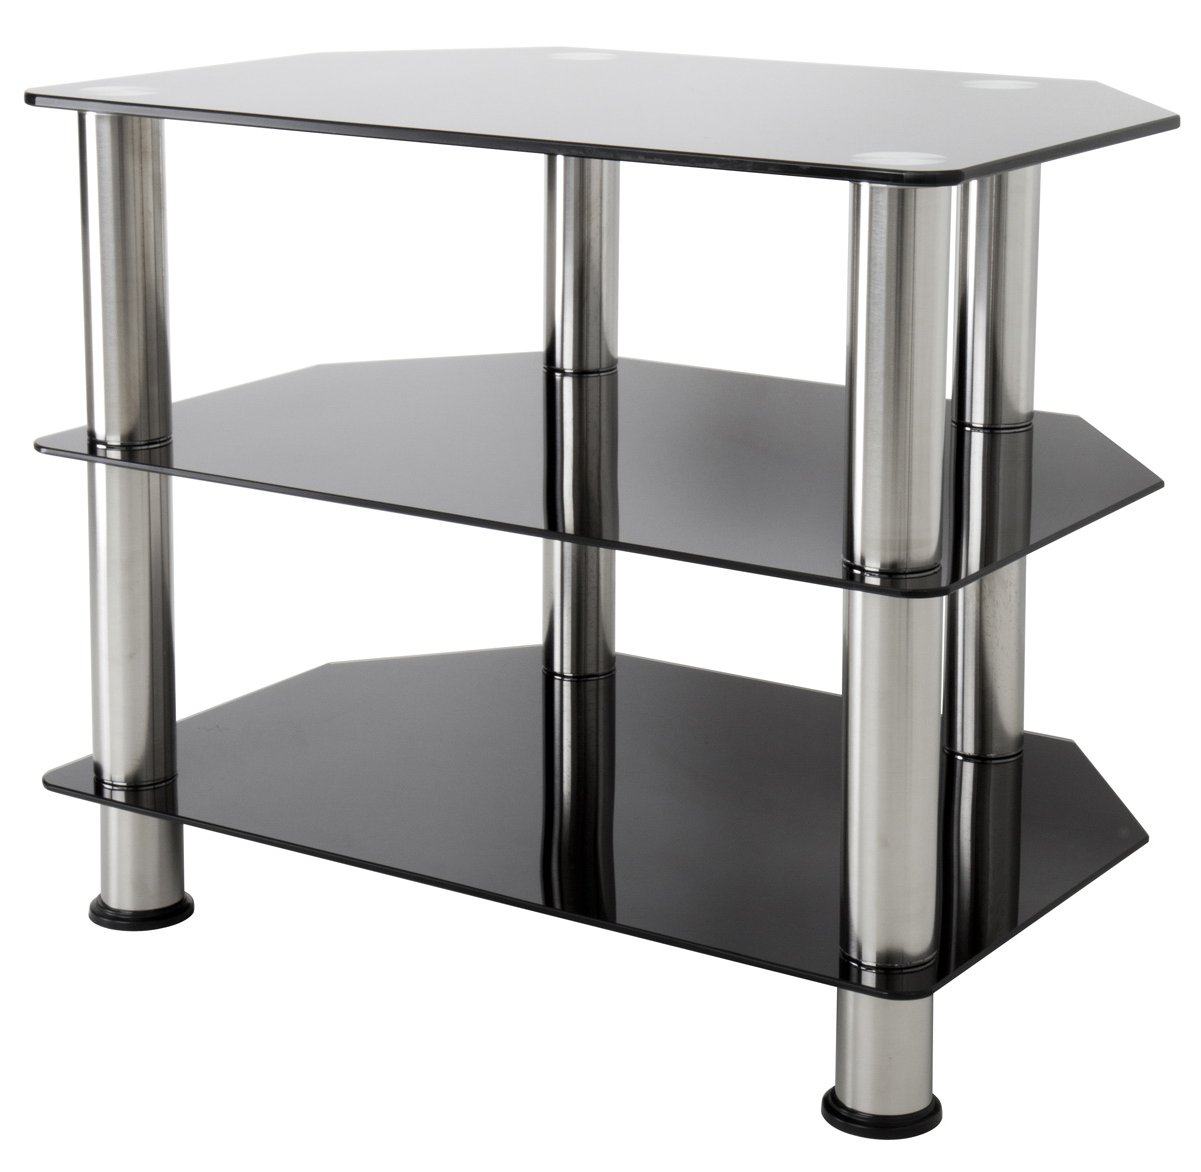 Avf Sdc600 Universal Black Glass And Chrome Legs Tv Stand